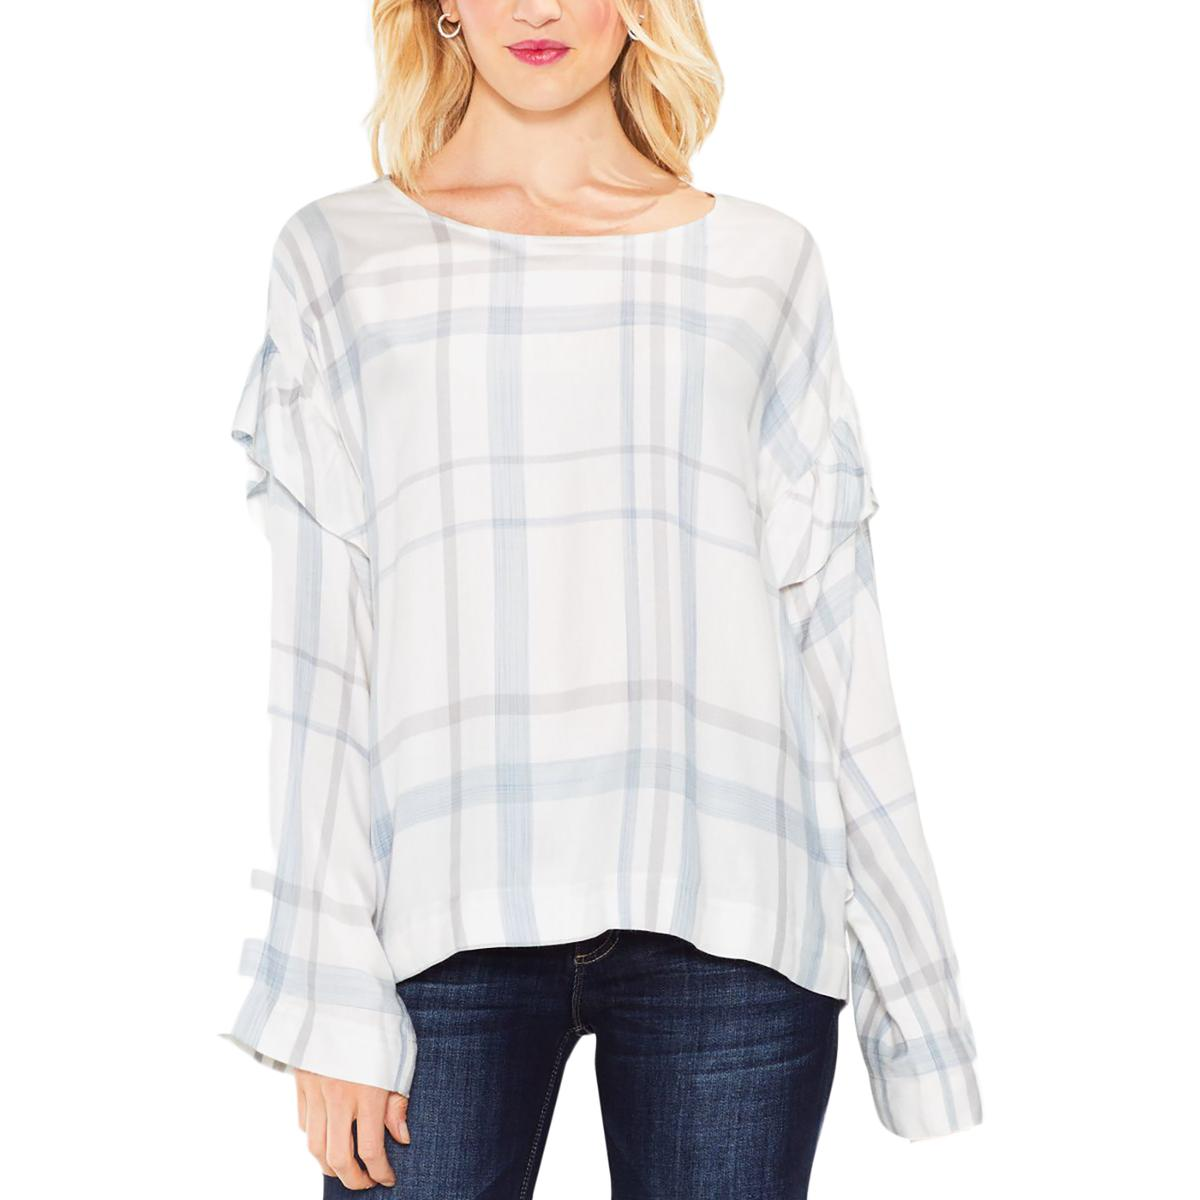 4e8a5d43403c7 Details about Two by Vince Camuto Womens Plaid Ruffle Pullover Top Shirt  BHFO 8815